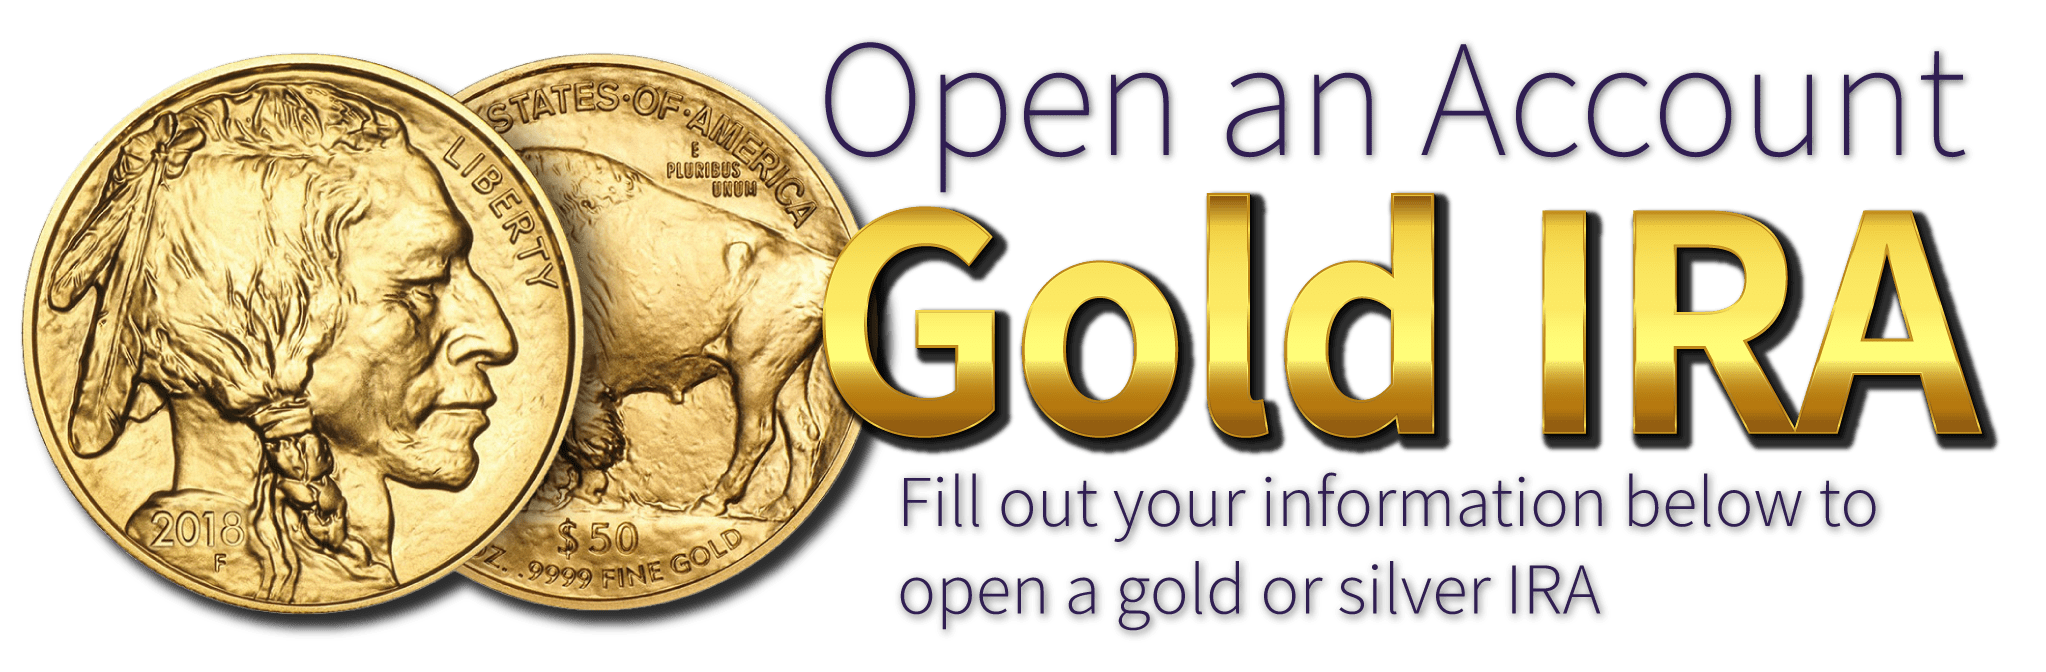 Open a Gold IRA with Oakhurst Metals. Fill out your information below to open a gold or silver IRA